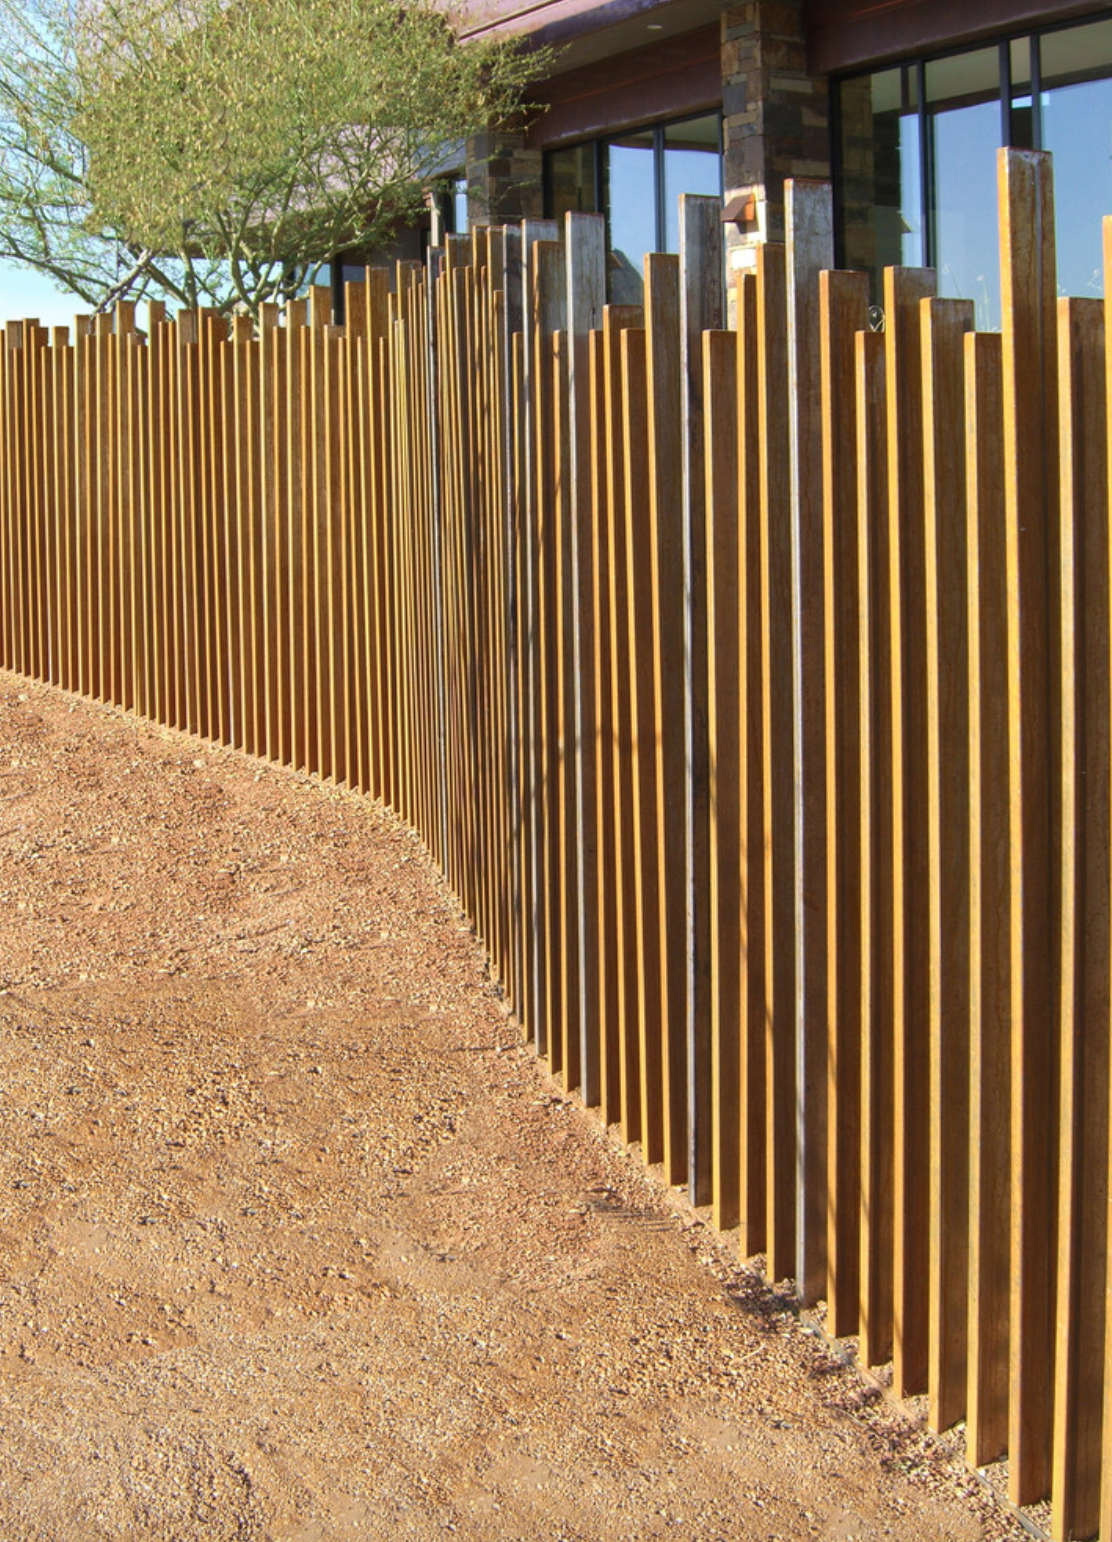 Vertical Pillars Of Different Heights Mj Front Yard Fence Design